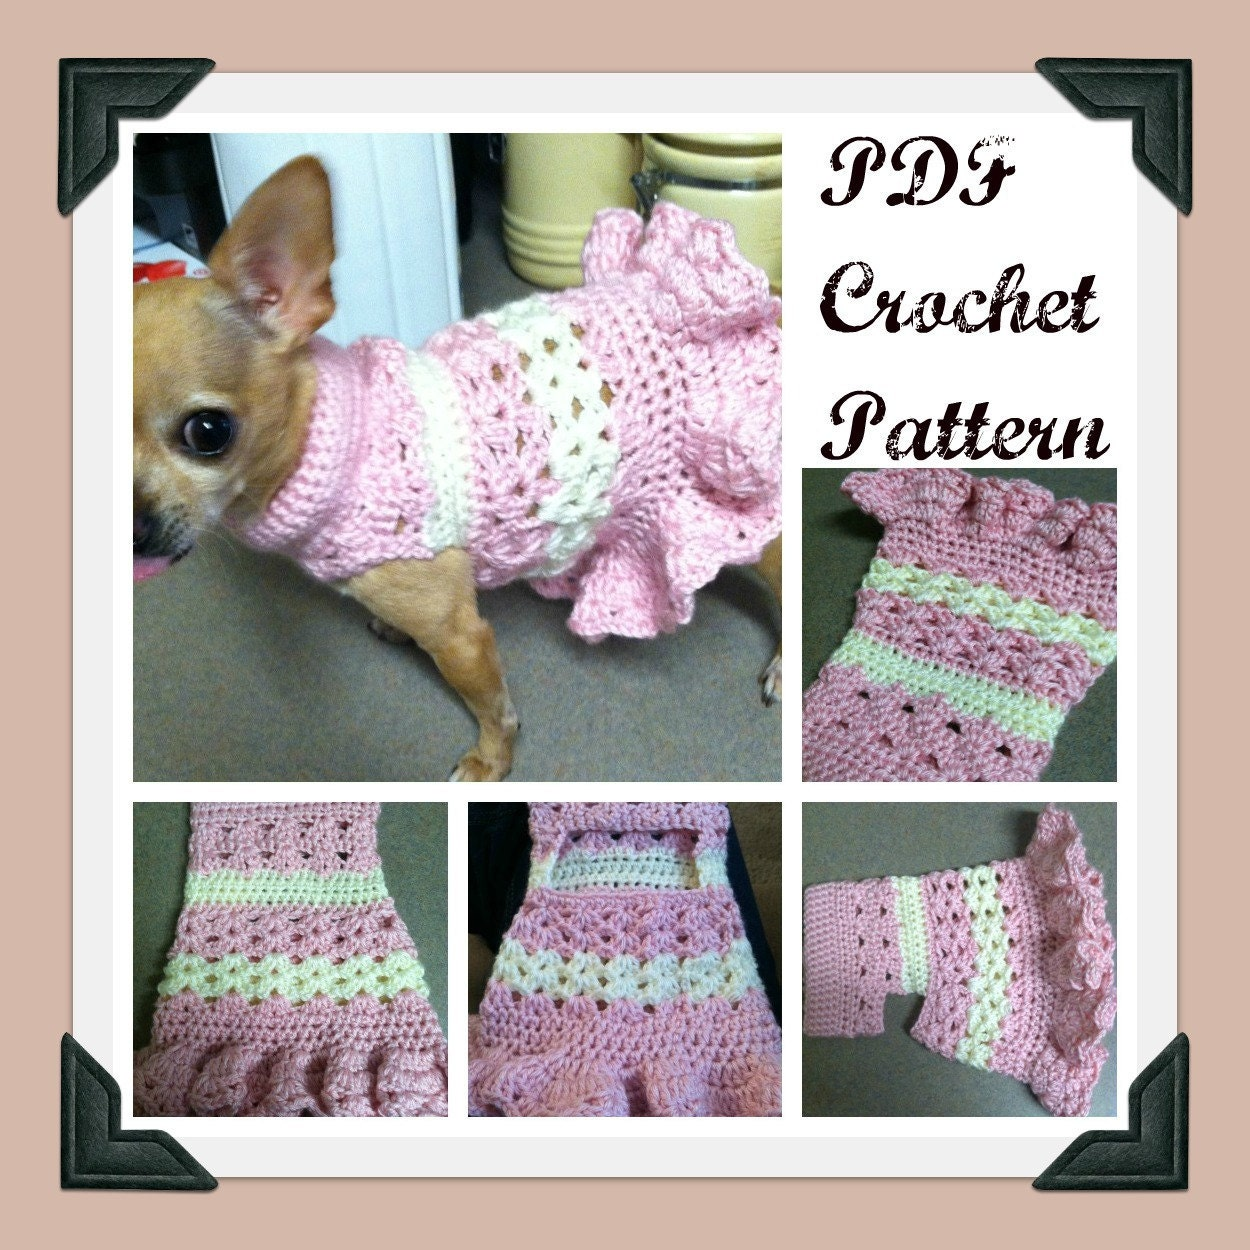 PDF Crochet Pattern Littlest Bo Peep Crochet Dog Dress